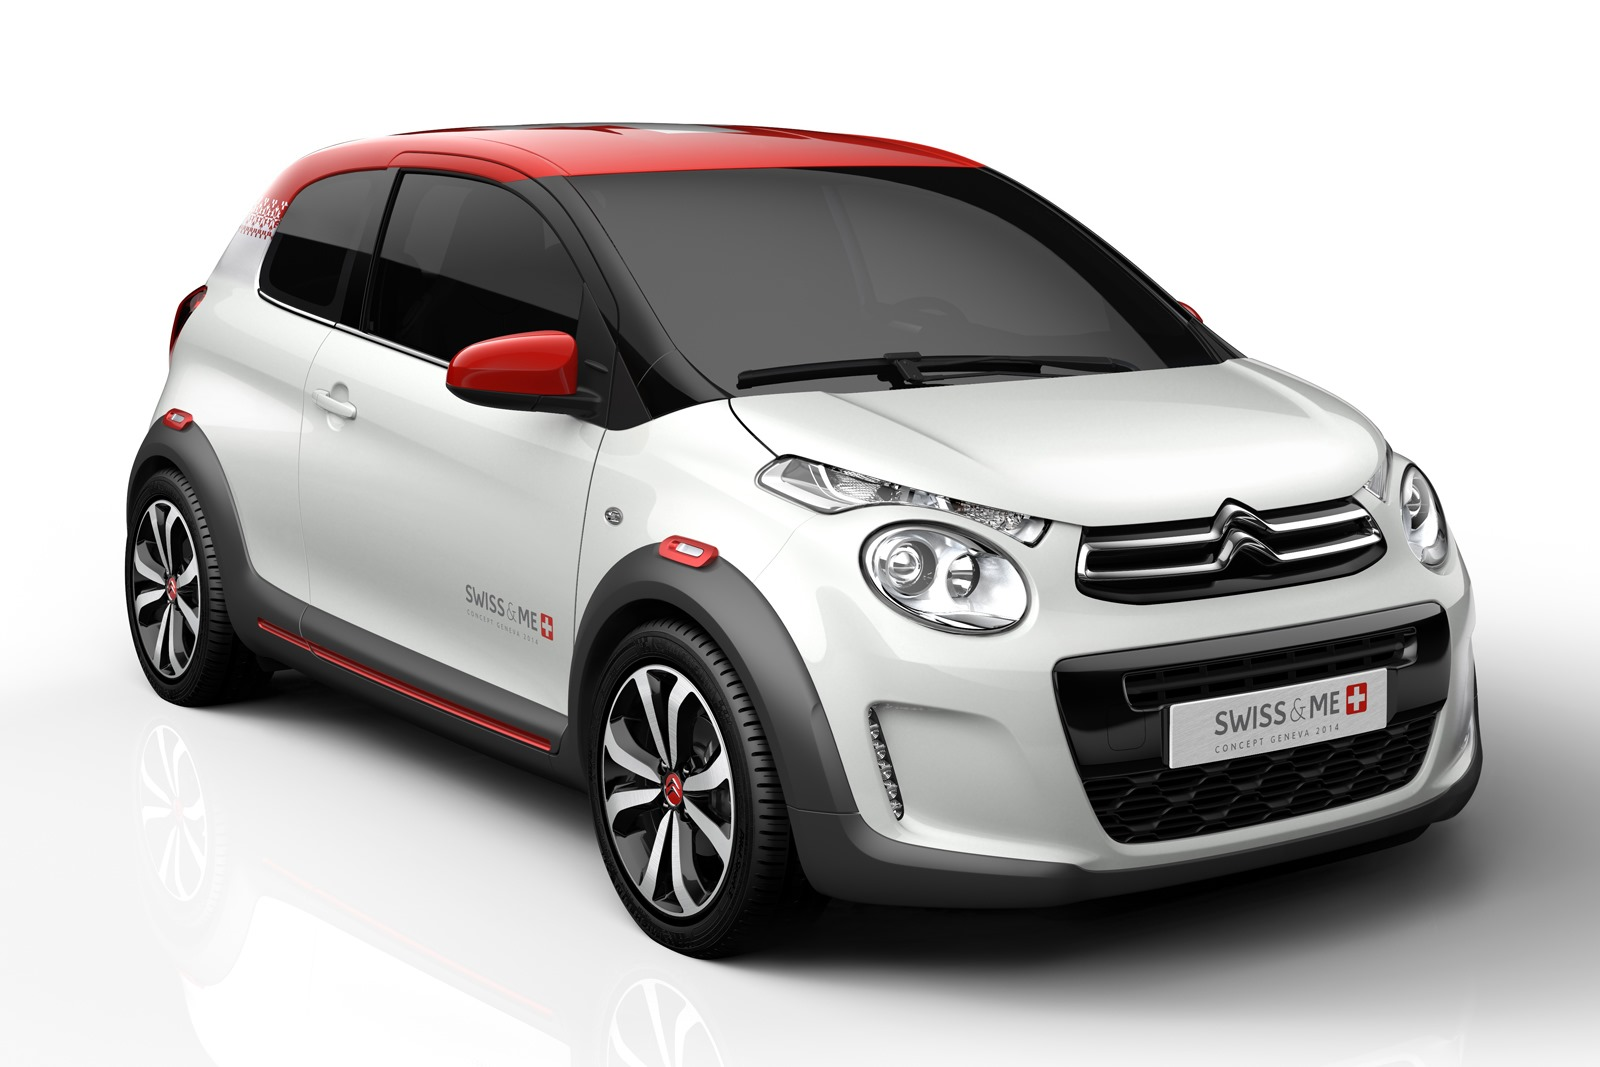 Citroen C1 Swiss & Me Concept Is a Beautiful Little Hot Hatchling